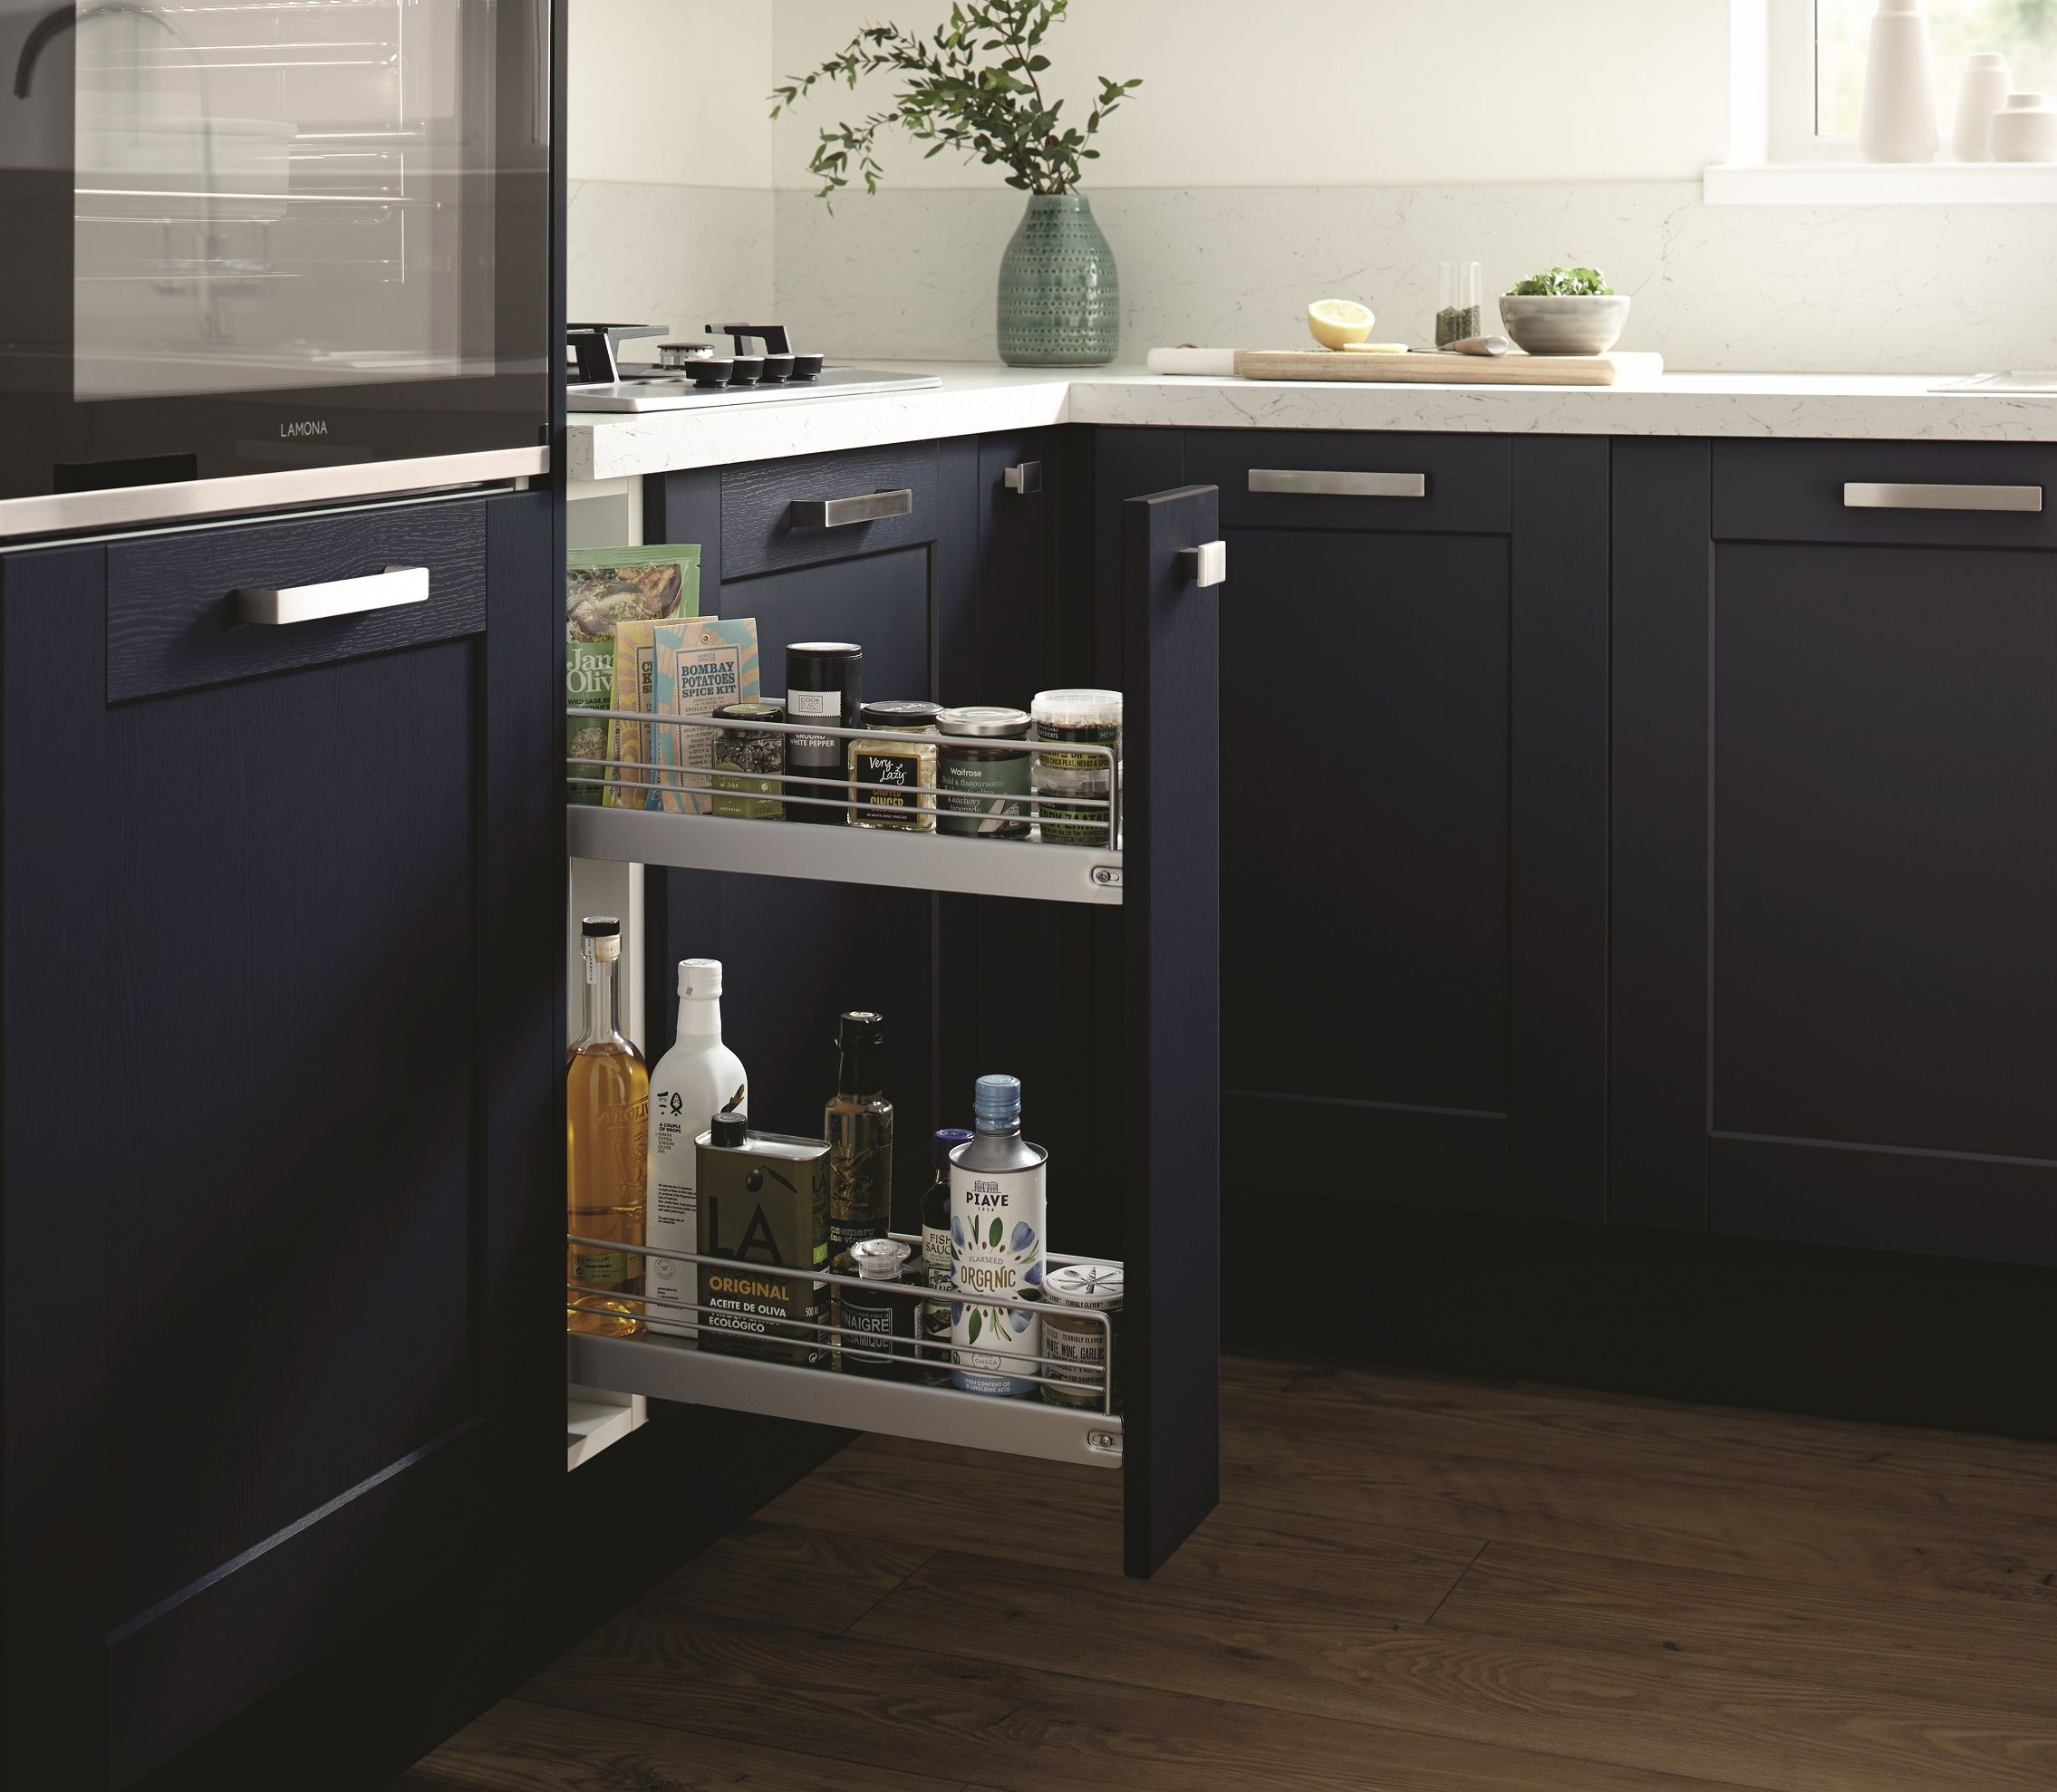 Howdens Kitchen Base Cabinets Howdens In 2019 Kitchen Storage Howdens Kitchens